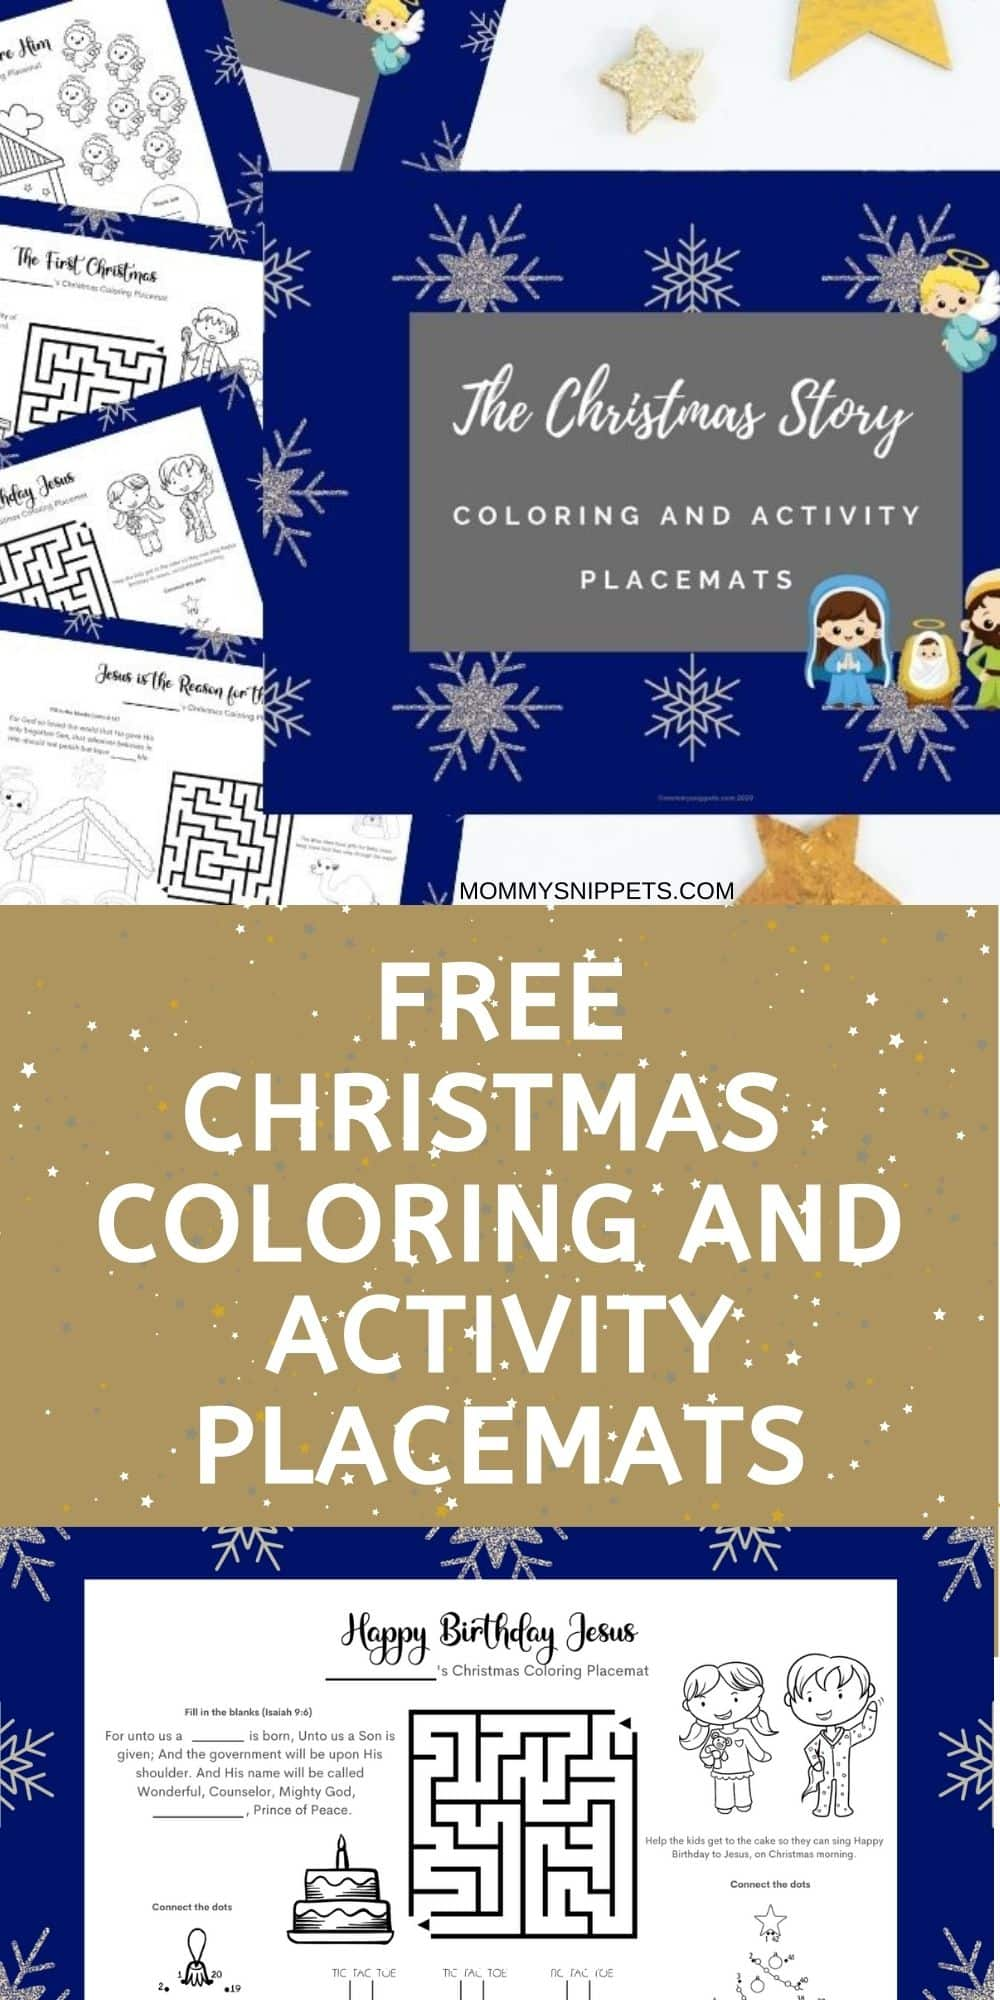 Free Printable Christmas Coloring and Activity Placemats- MommySnippets.com